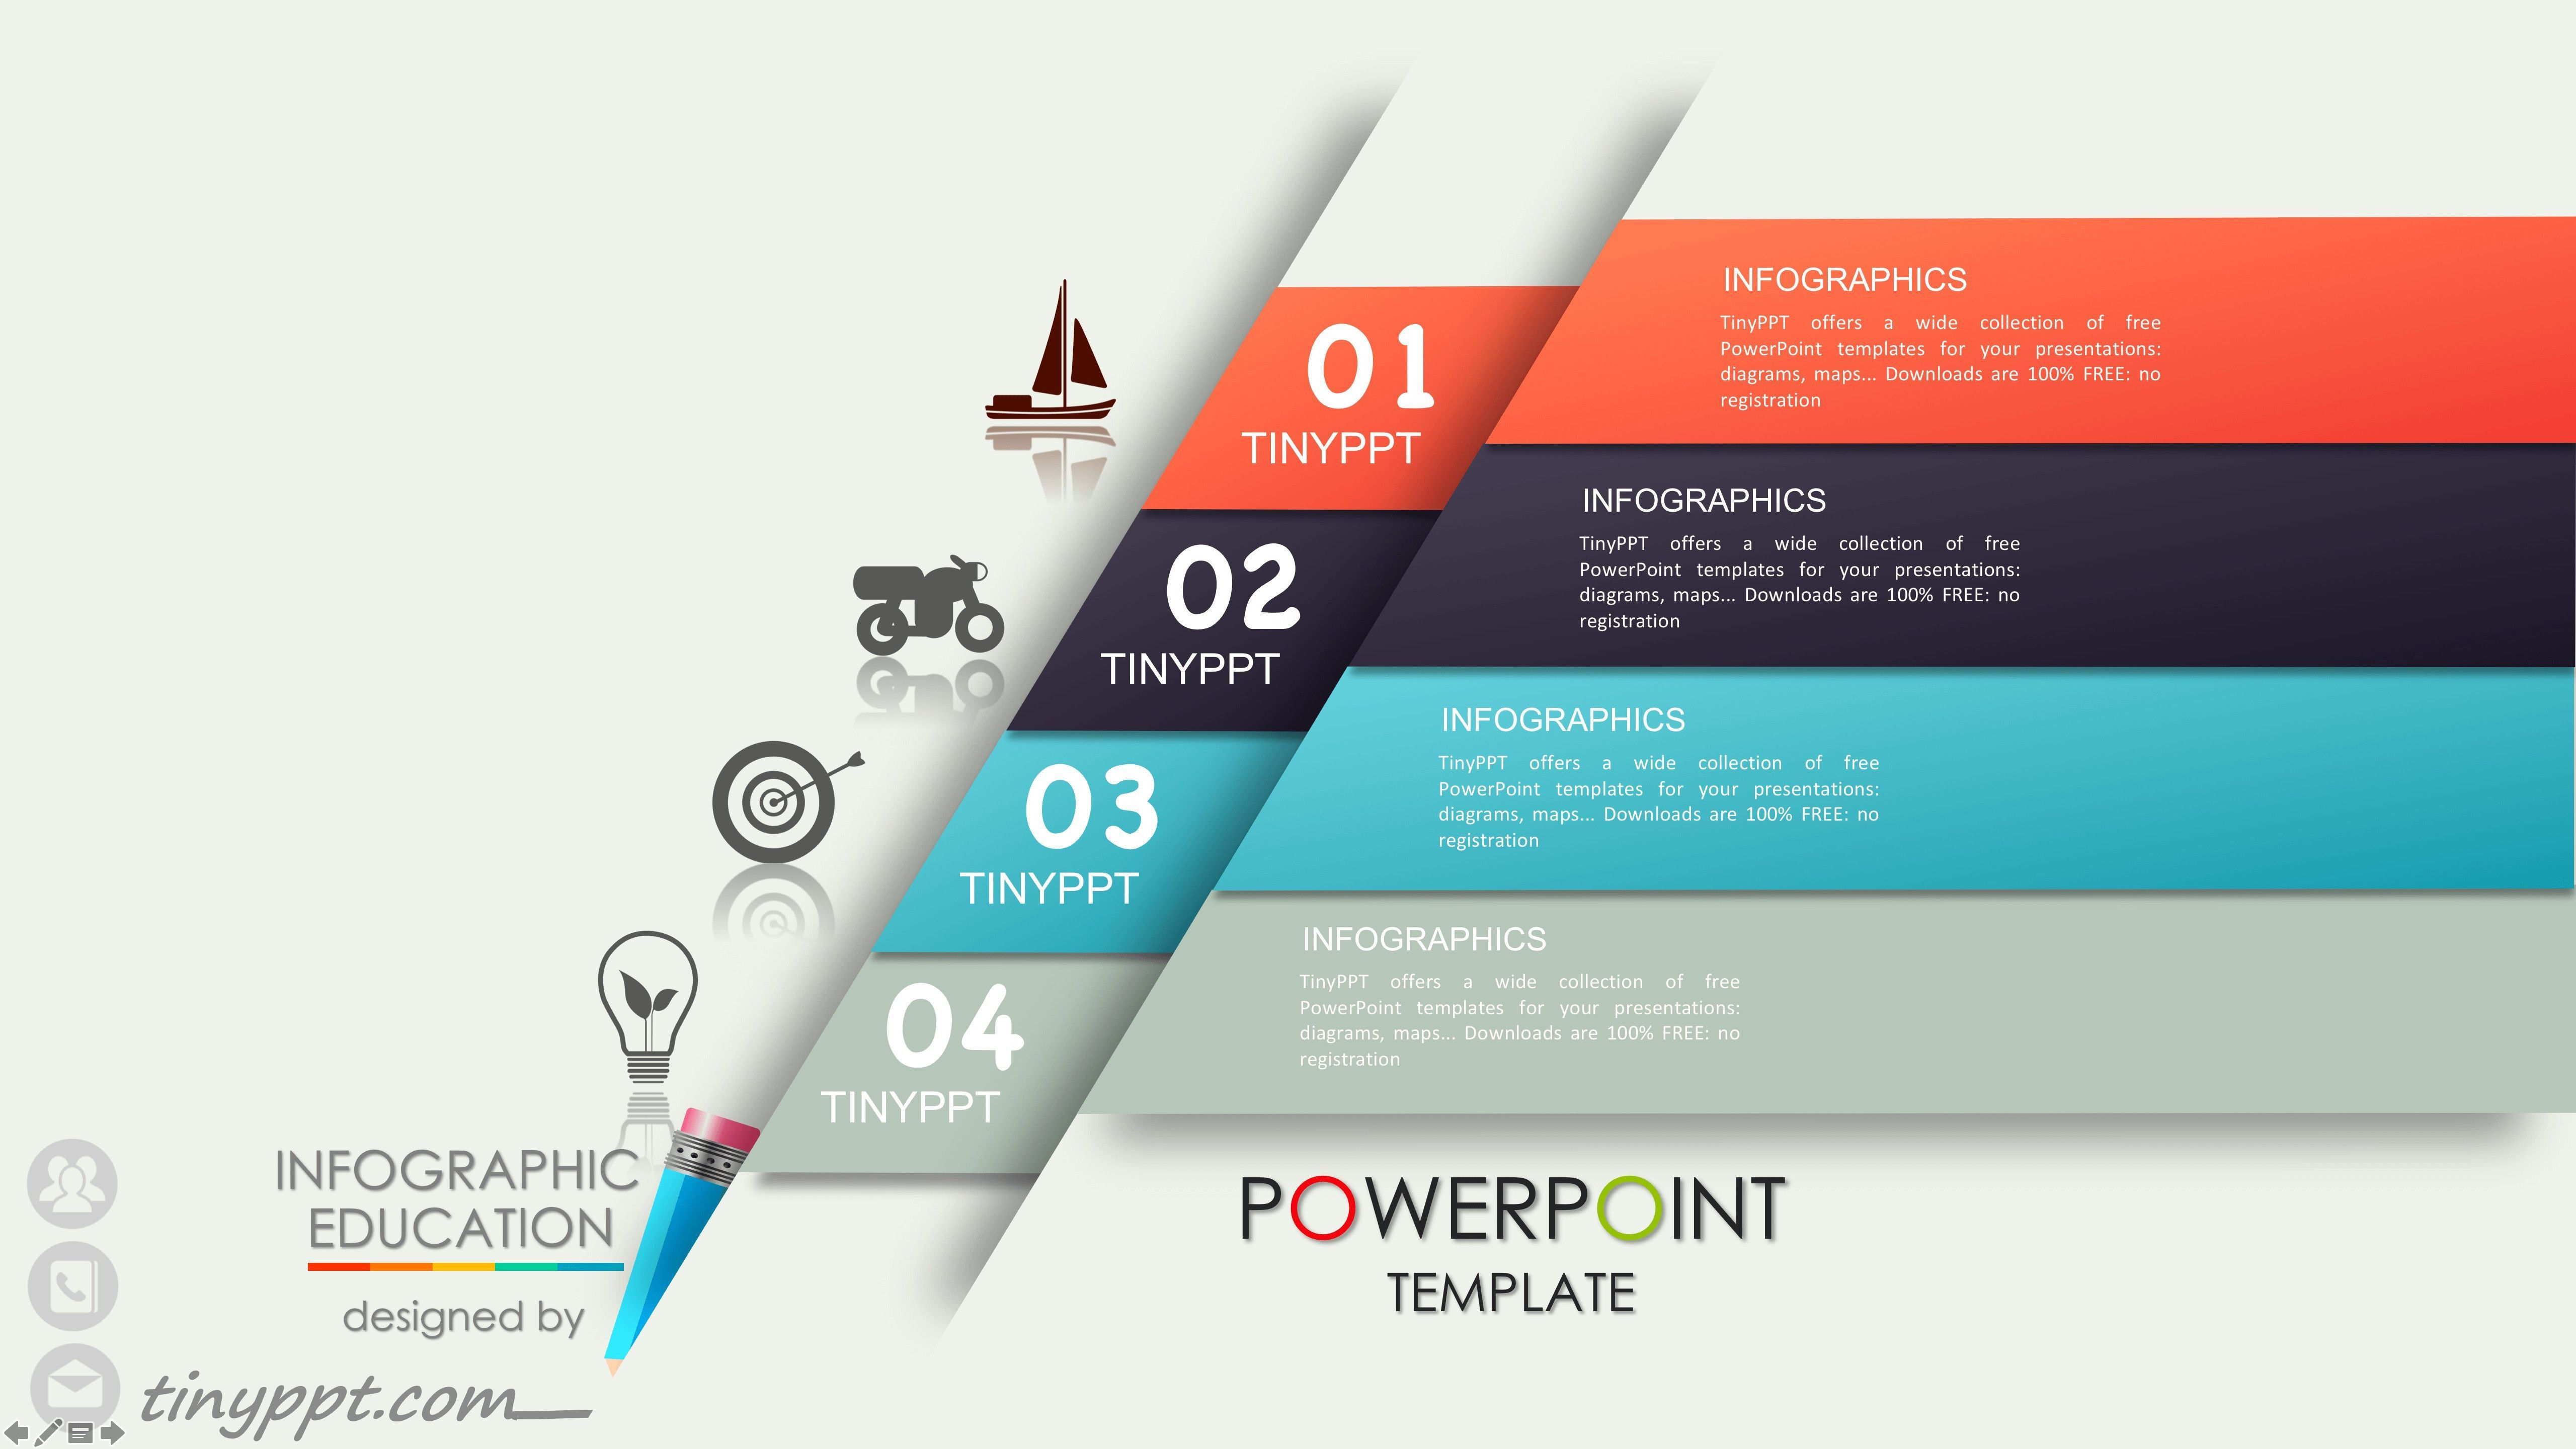 Winter Themed Powerpoint Template Unique Summer Slide Infographic E Powerpoint Background Templates Presentation Template Free Business Powerpoint Templates Free power point templates com